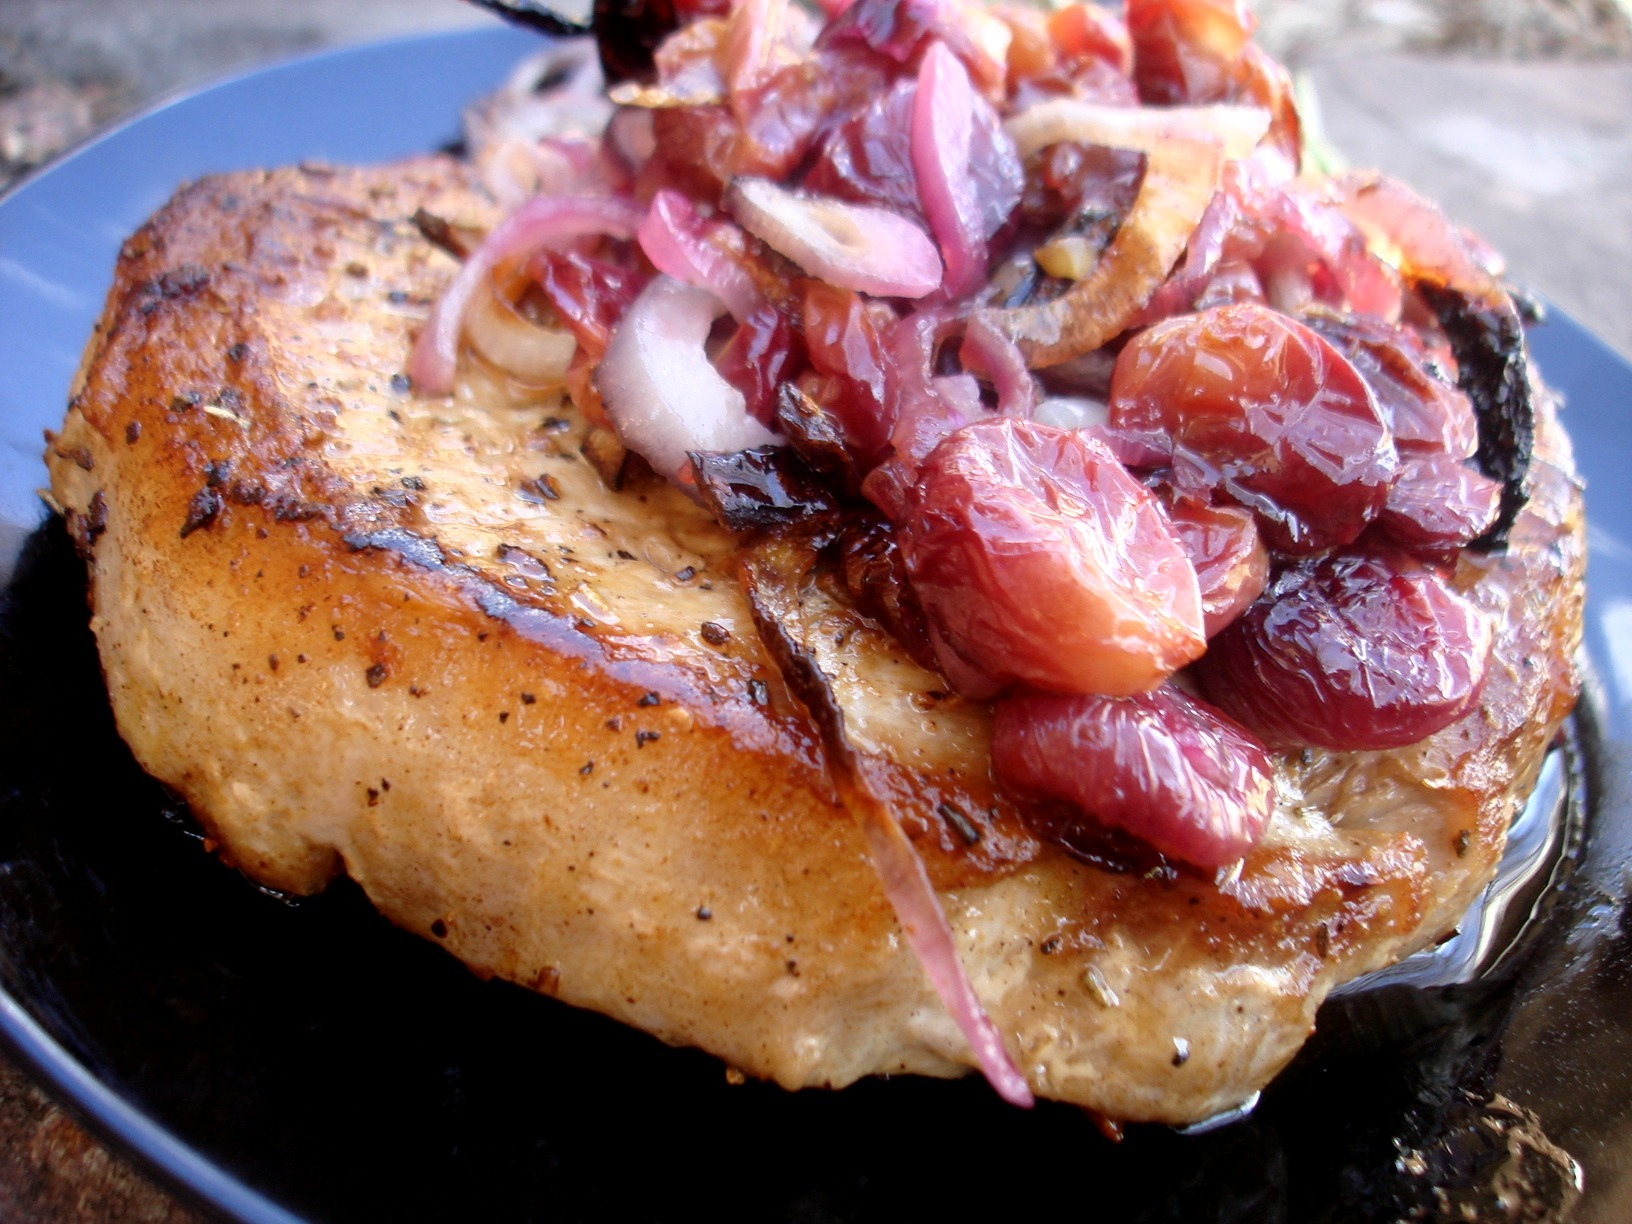 Coconut Oil Grapes Pork Chop Red Onion Rosemary Slideshow